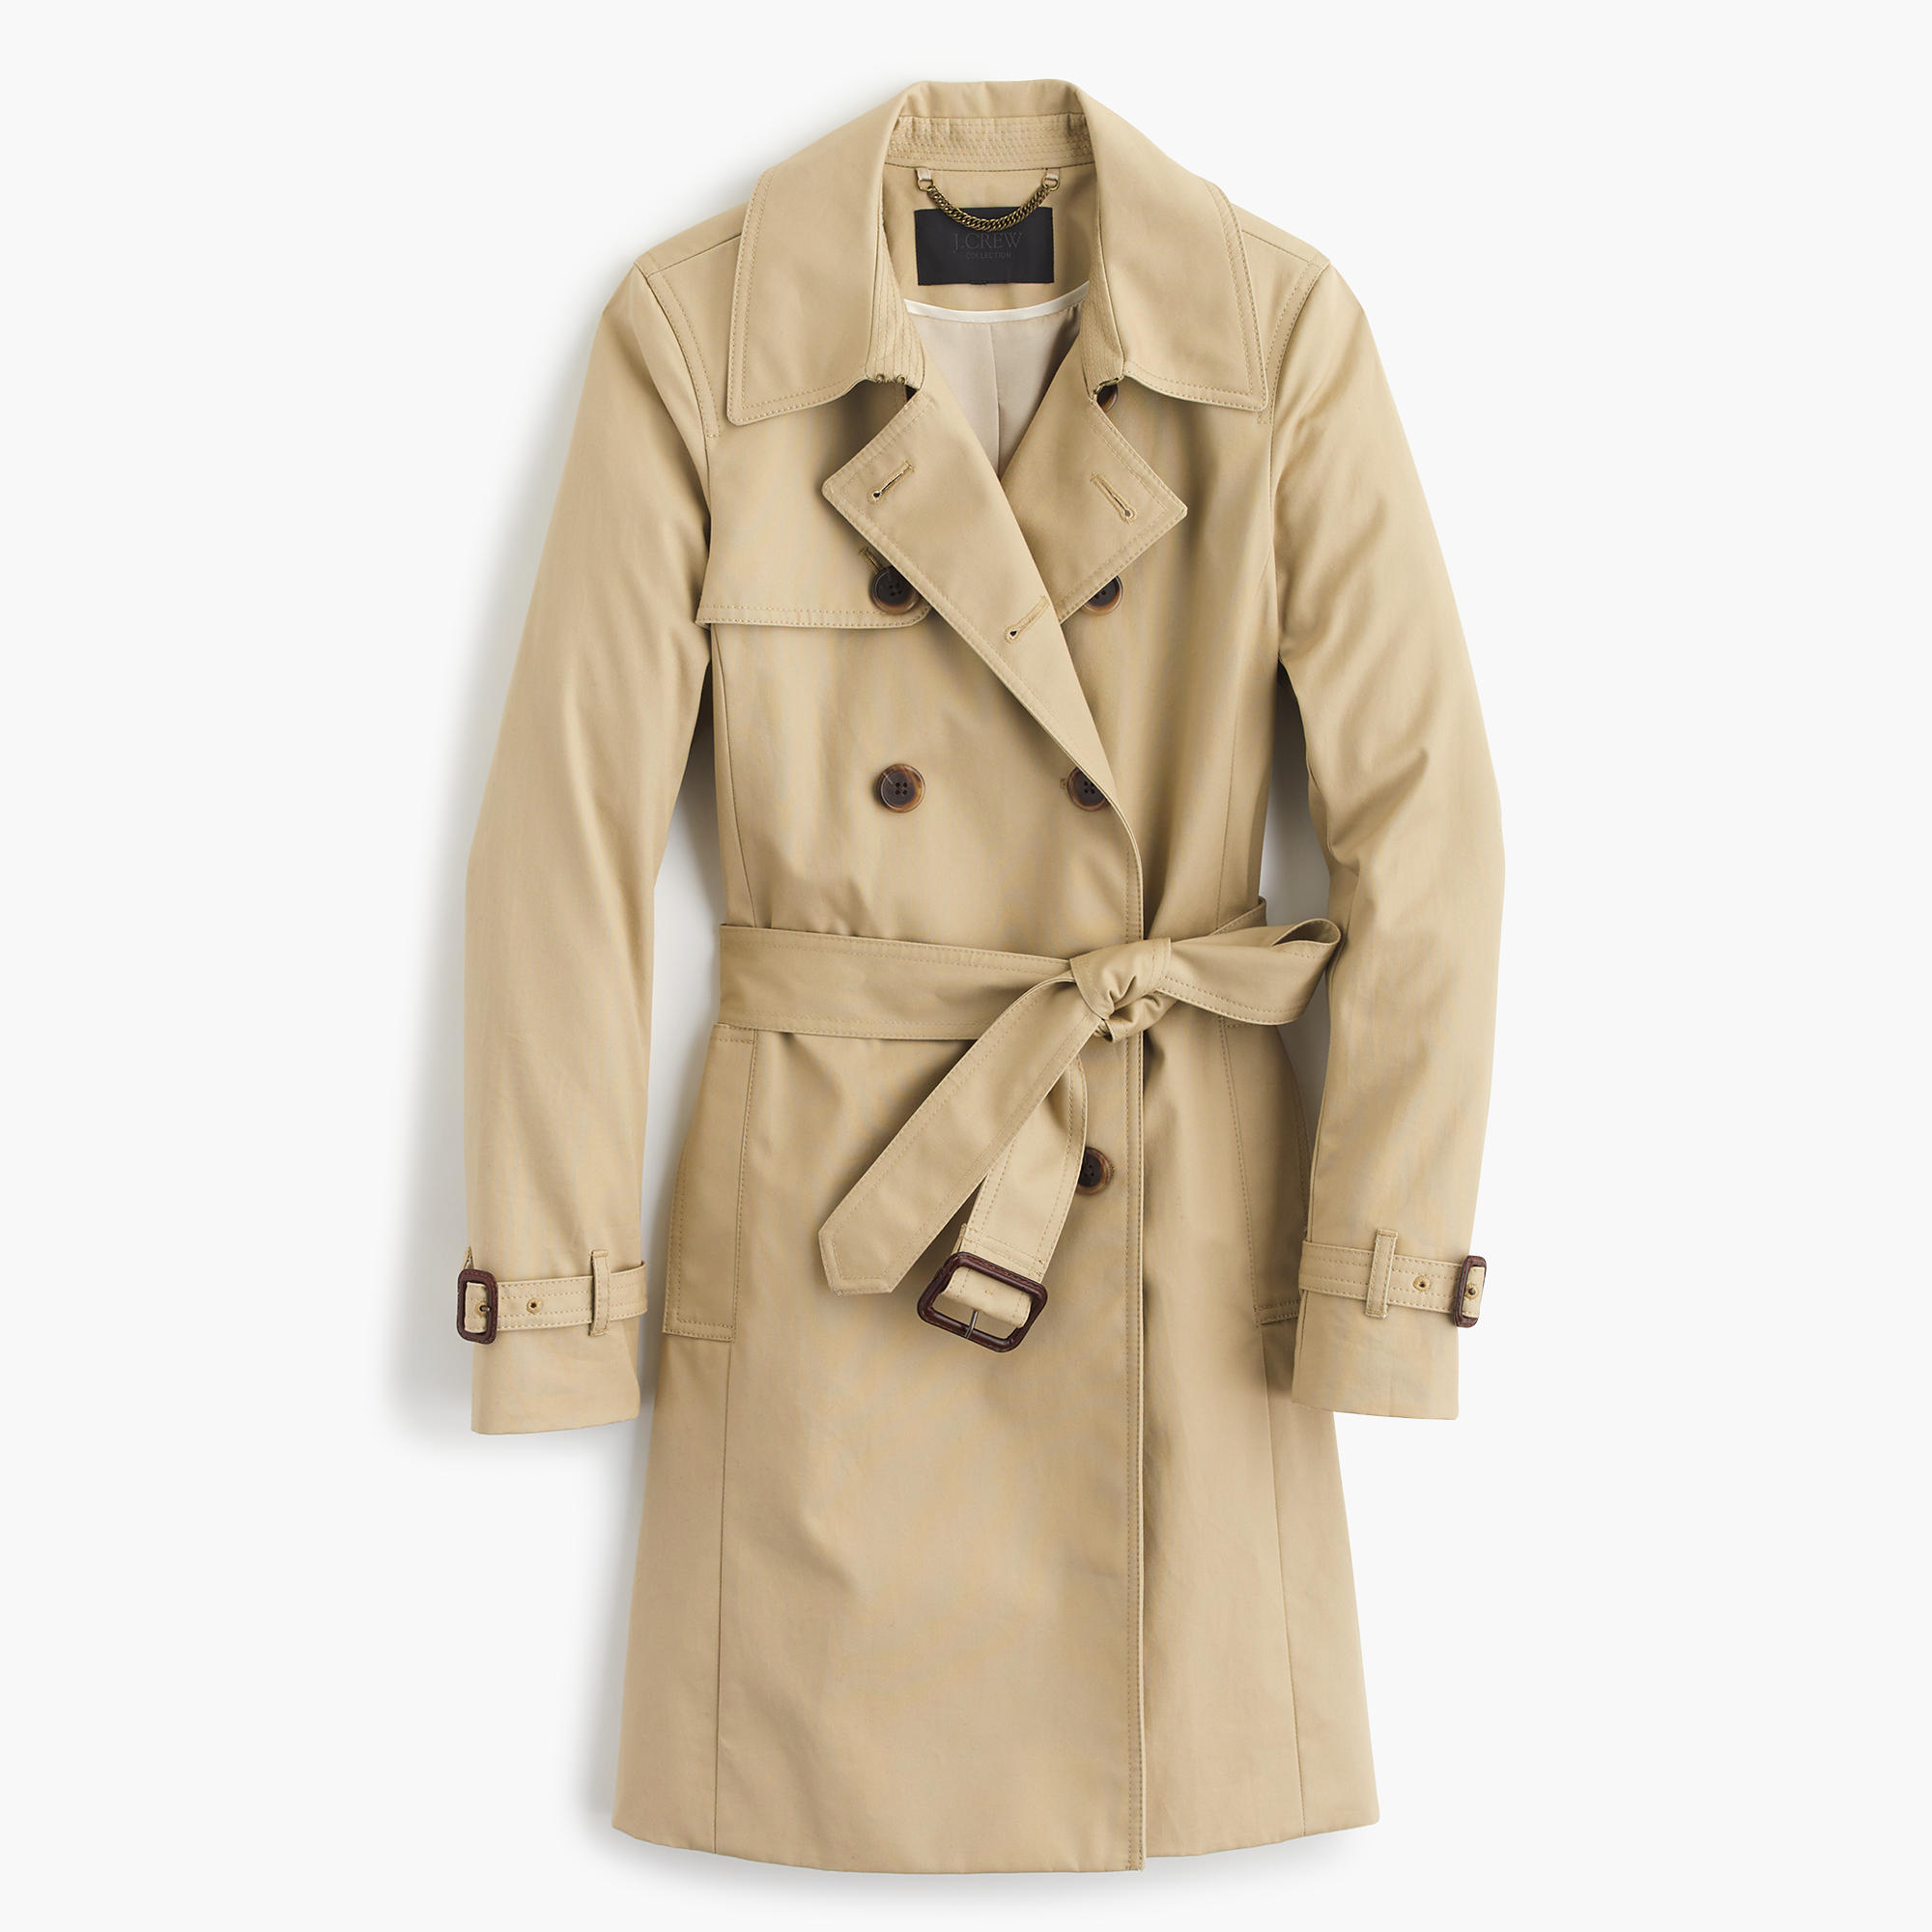 To get a casual, daytime look, you can wear a beige coat with denim 10mins.ml that at this time of year we usually wear a thick coat because of the cold, it is best to go for skinny jeans with a brightly coloured blouse to add a dash of colour to your look.